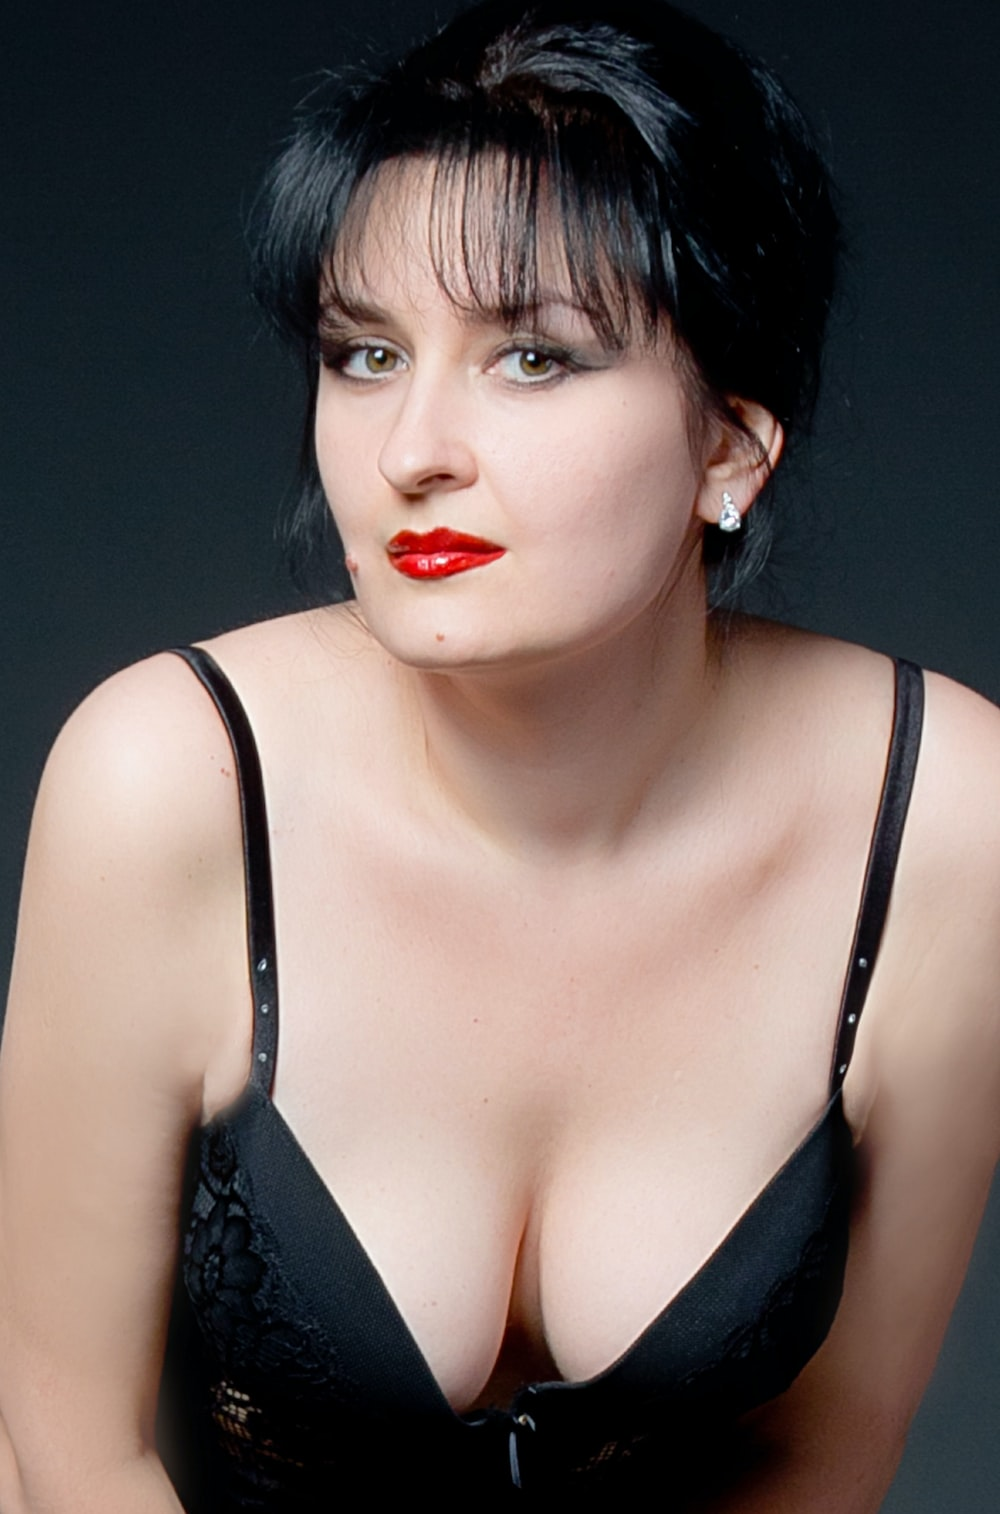 woman wearing black brassiere